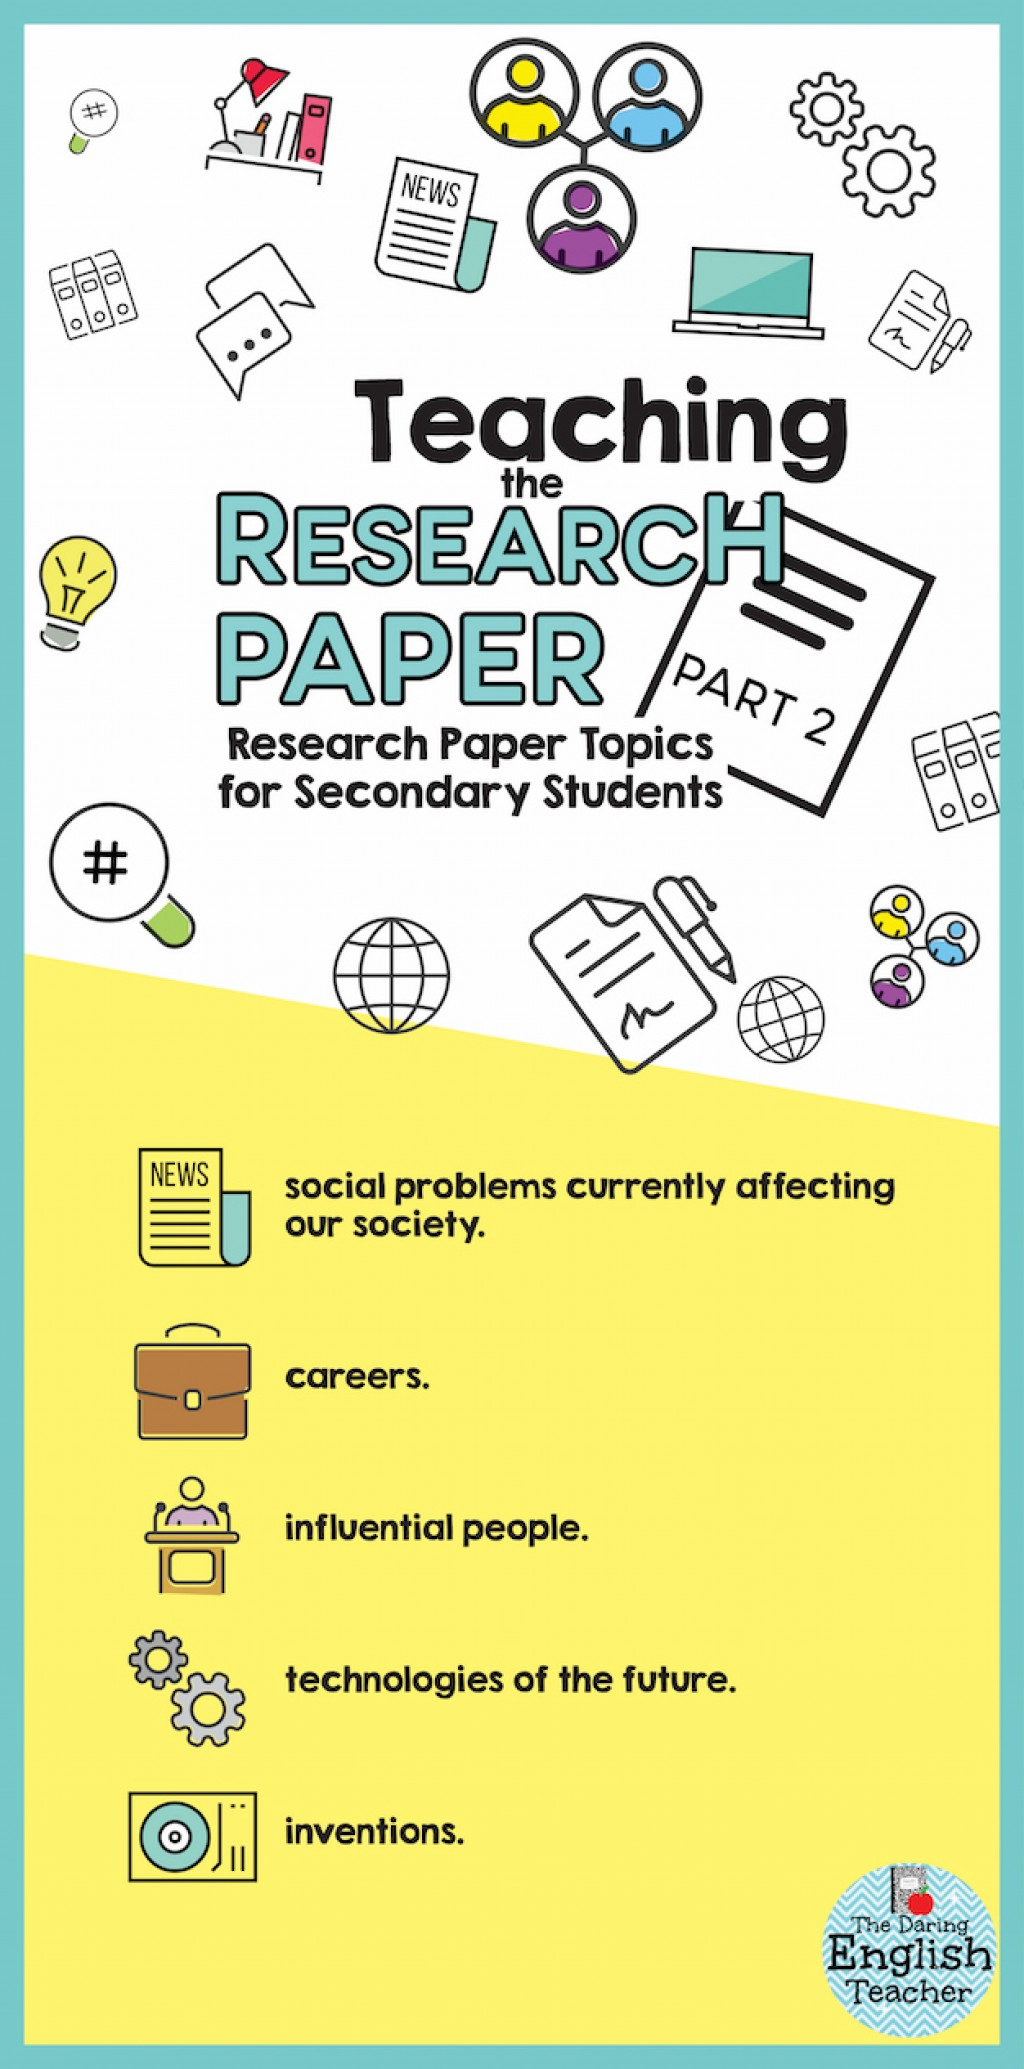 002 Good Research Paper Topics For 10th Grade English Awesome Large